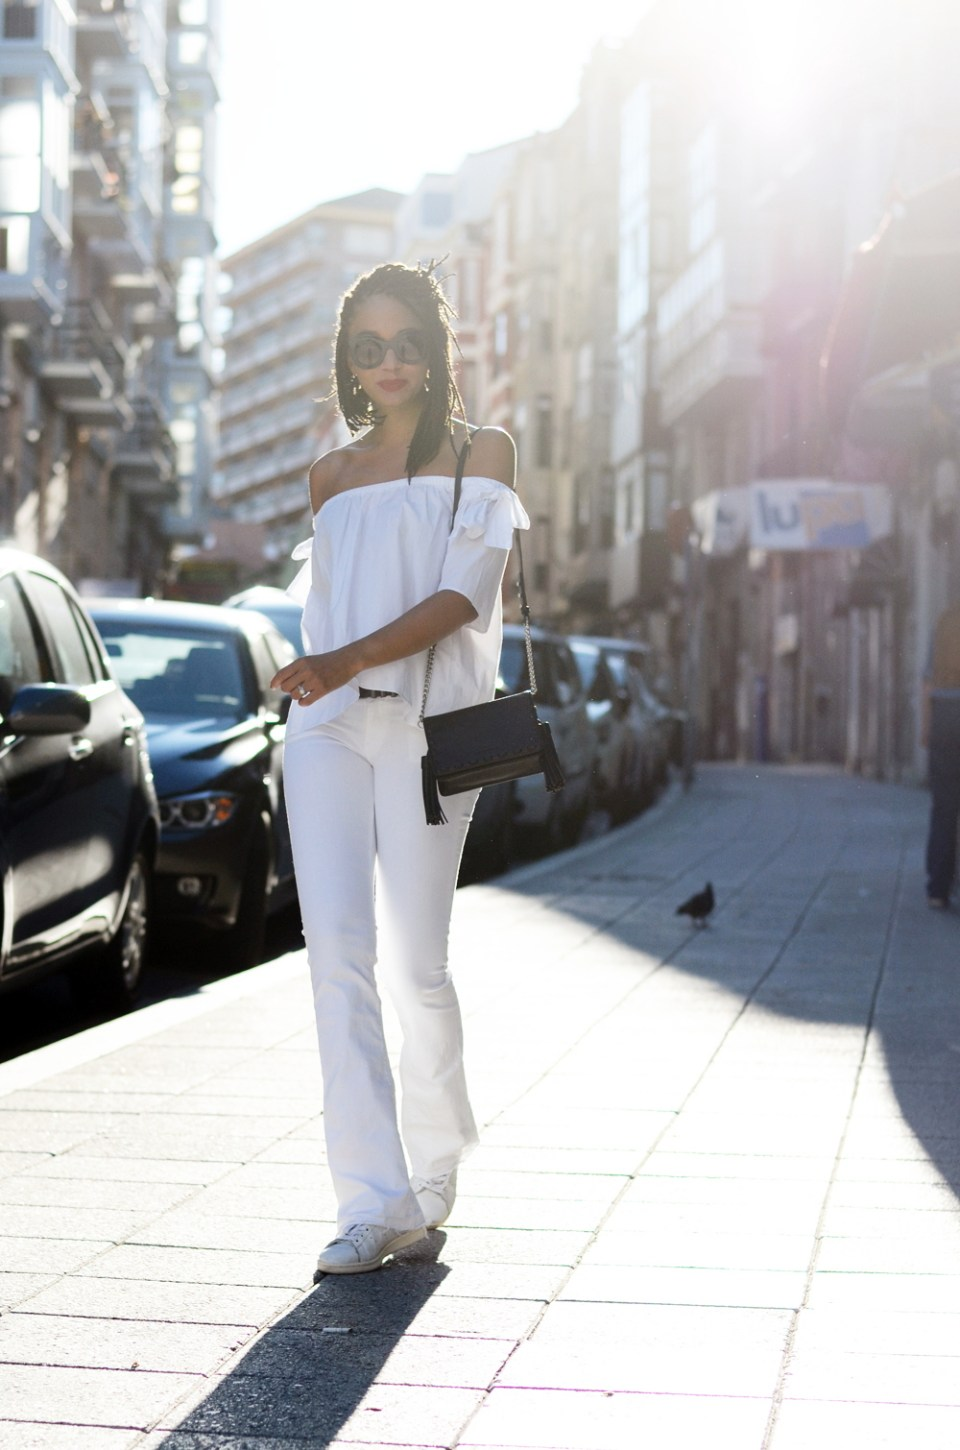 mercredie-blog-fashion-blogger-mode-geneve-suisse-santander-celine-marta-all-white-outfit-flare-elisabetta-franchetti-ceinture-kooples5